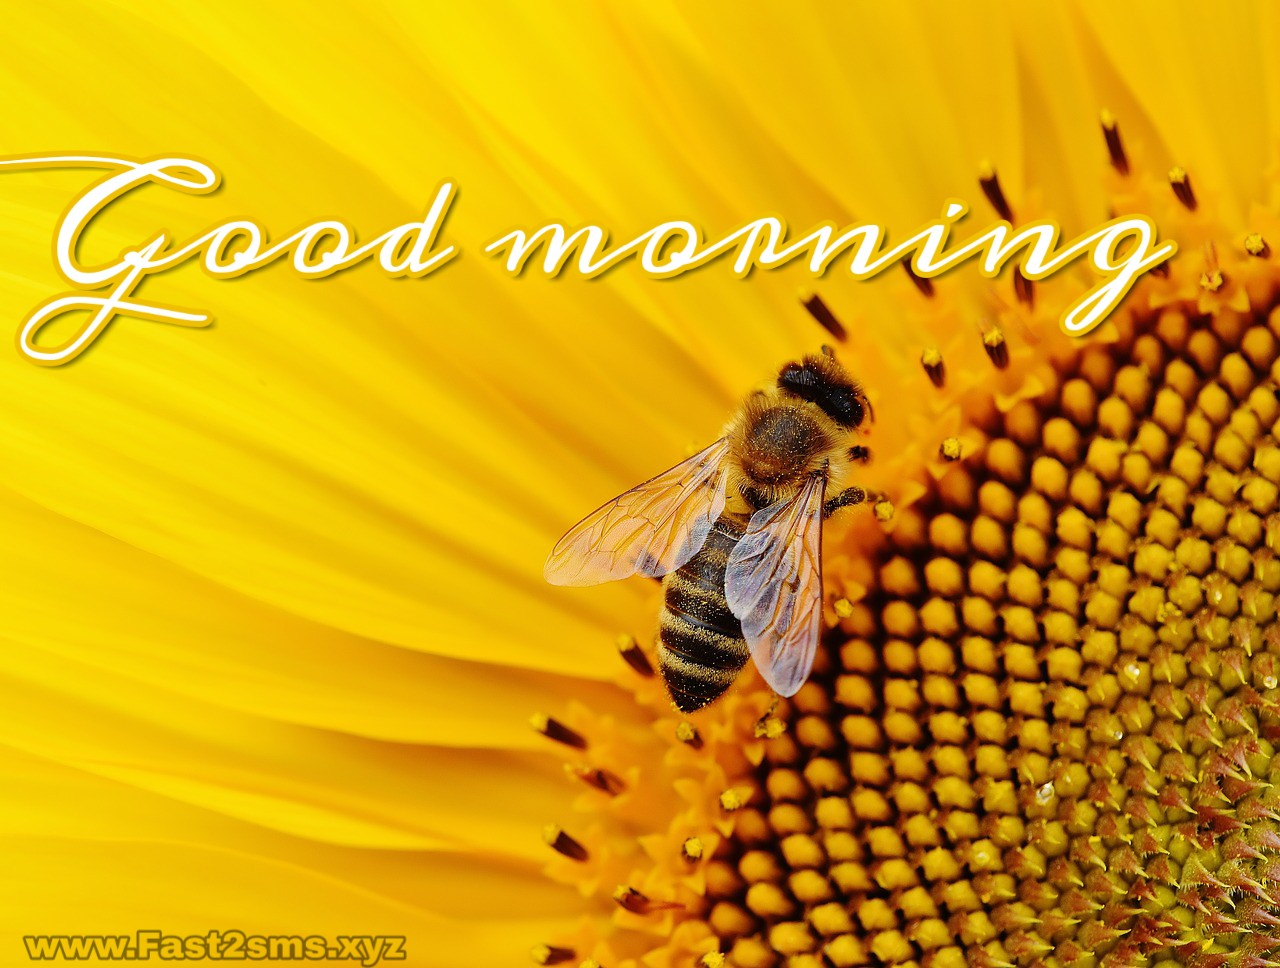 Good Morning Images Hd Good Morning Images Free Download By Fast2sms